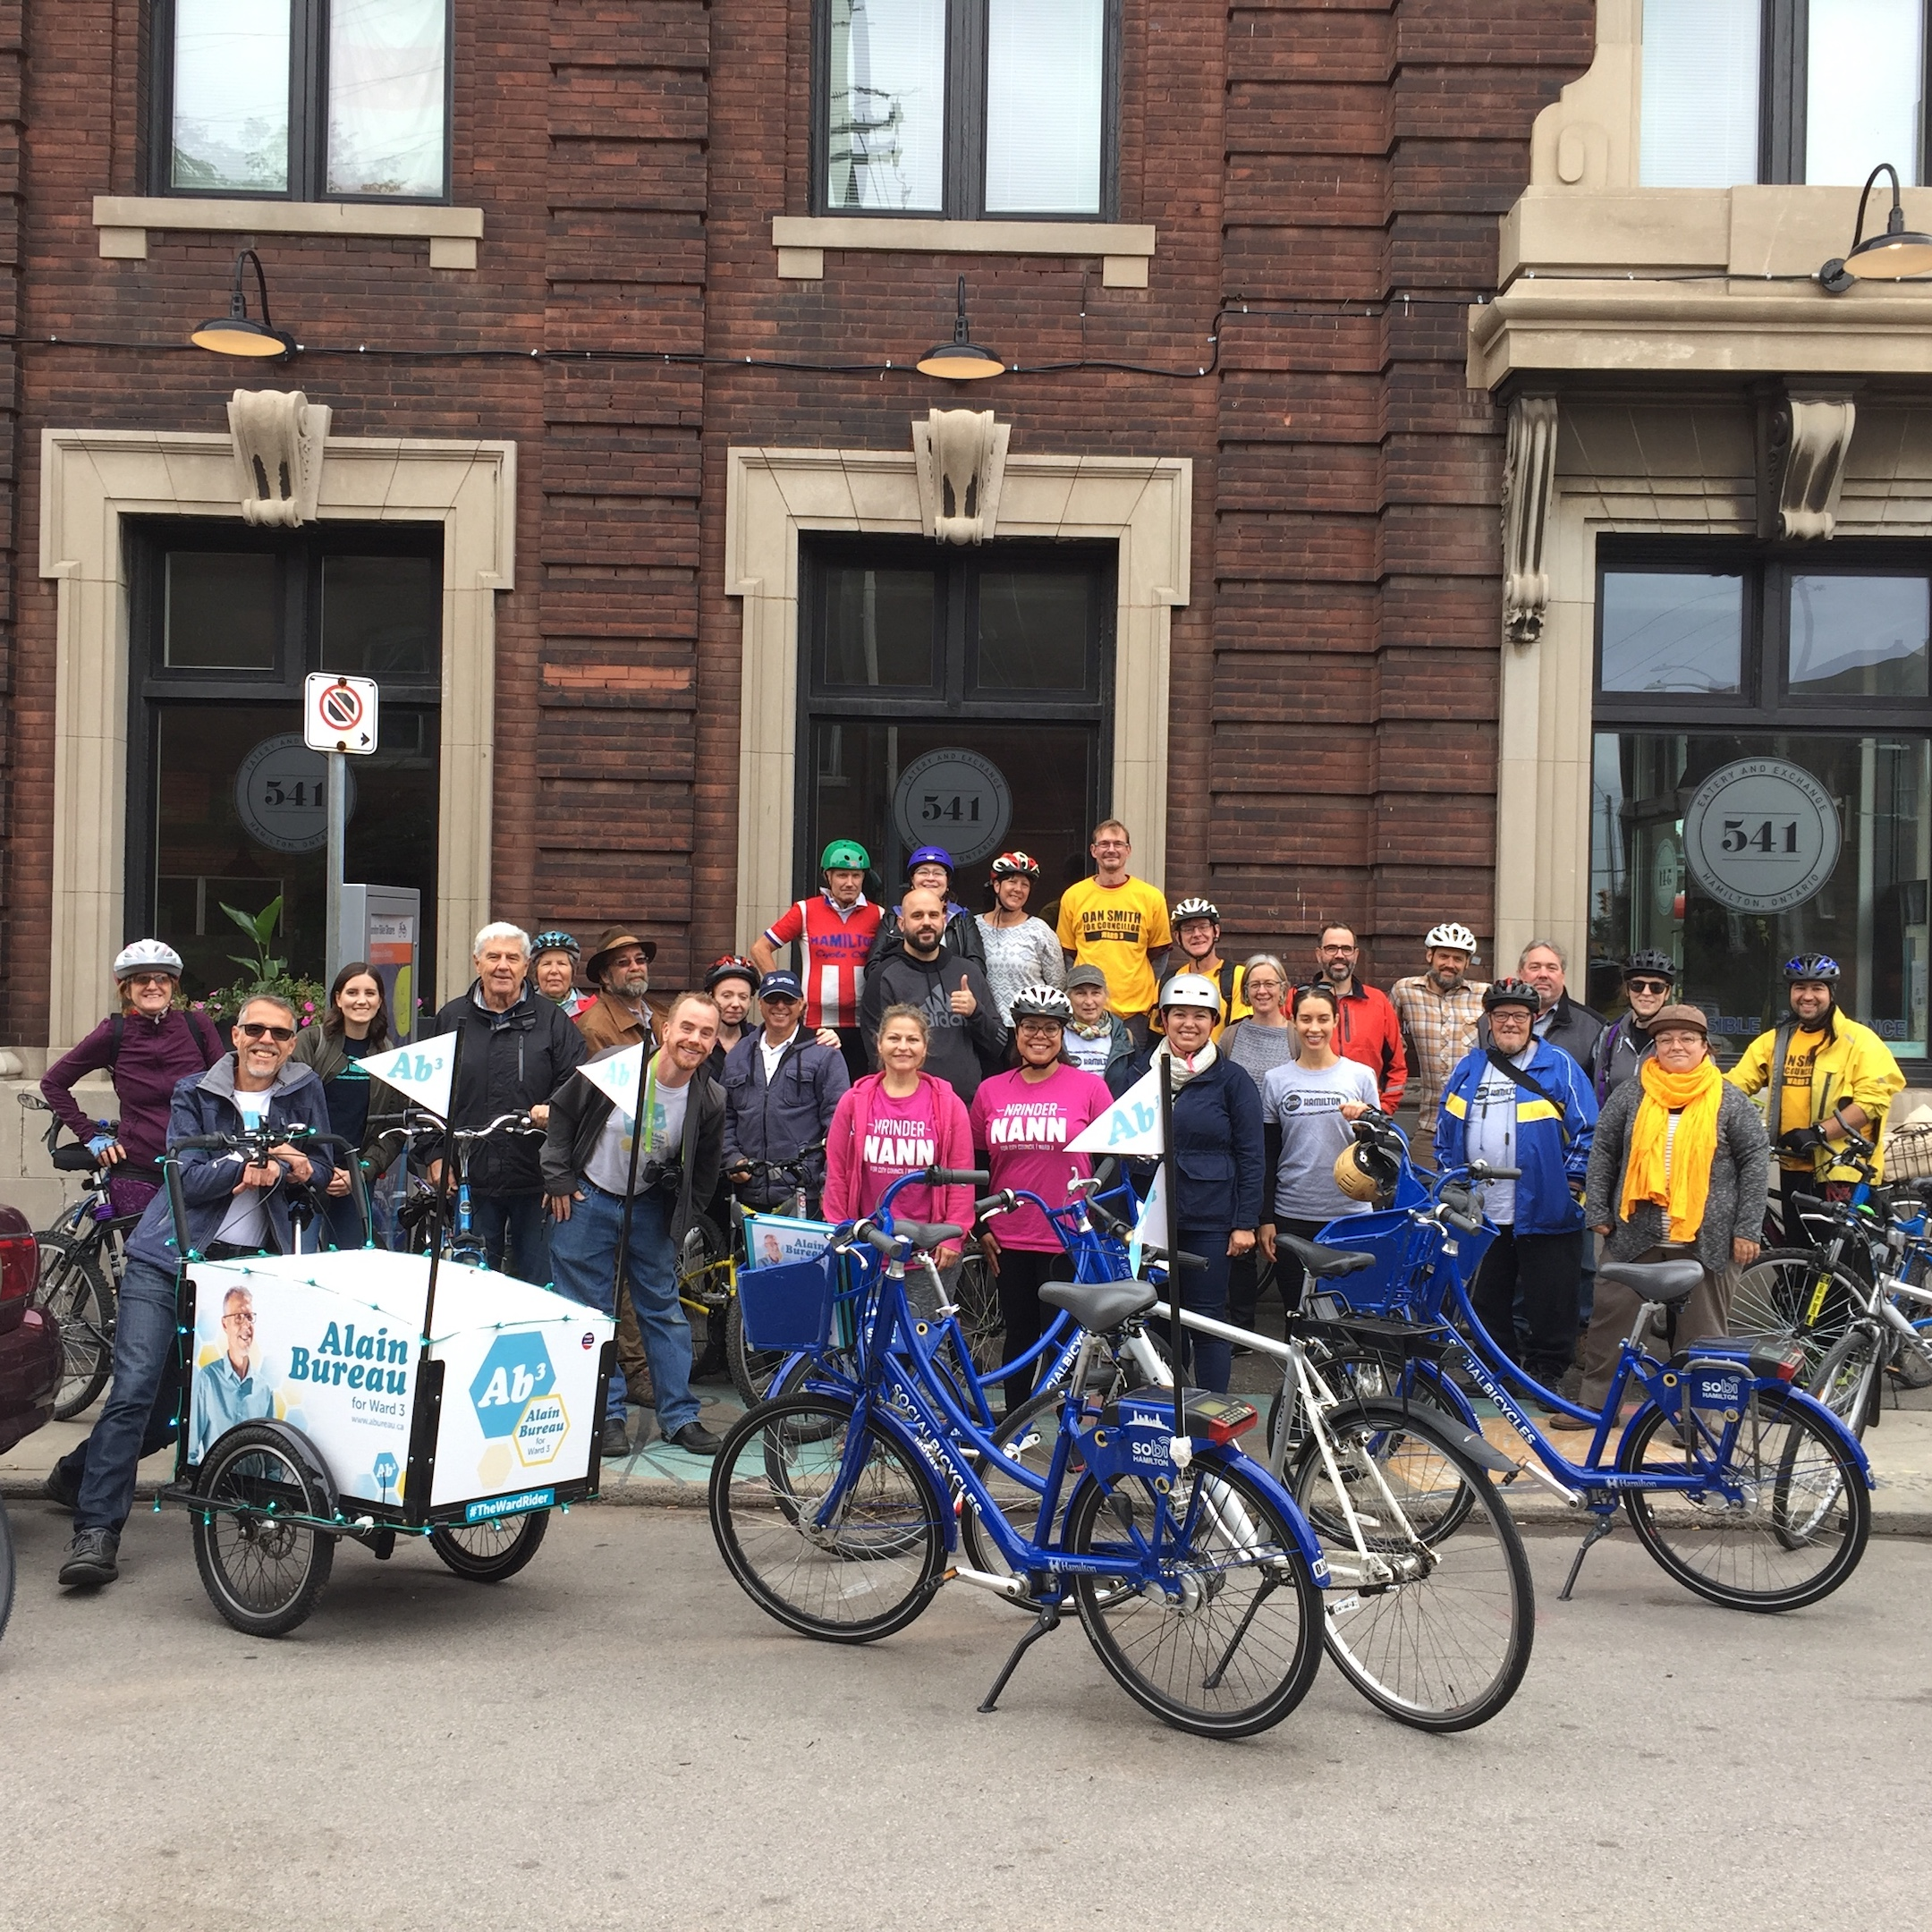 A large group of about 30 people standing in front of a coffee shop with bicycles before heading out on a bike ride